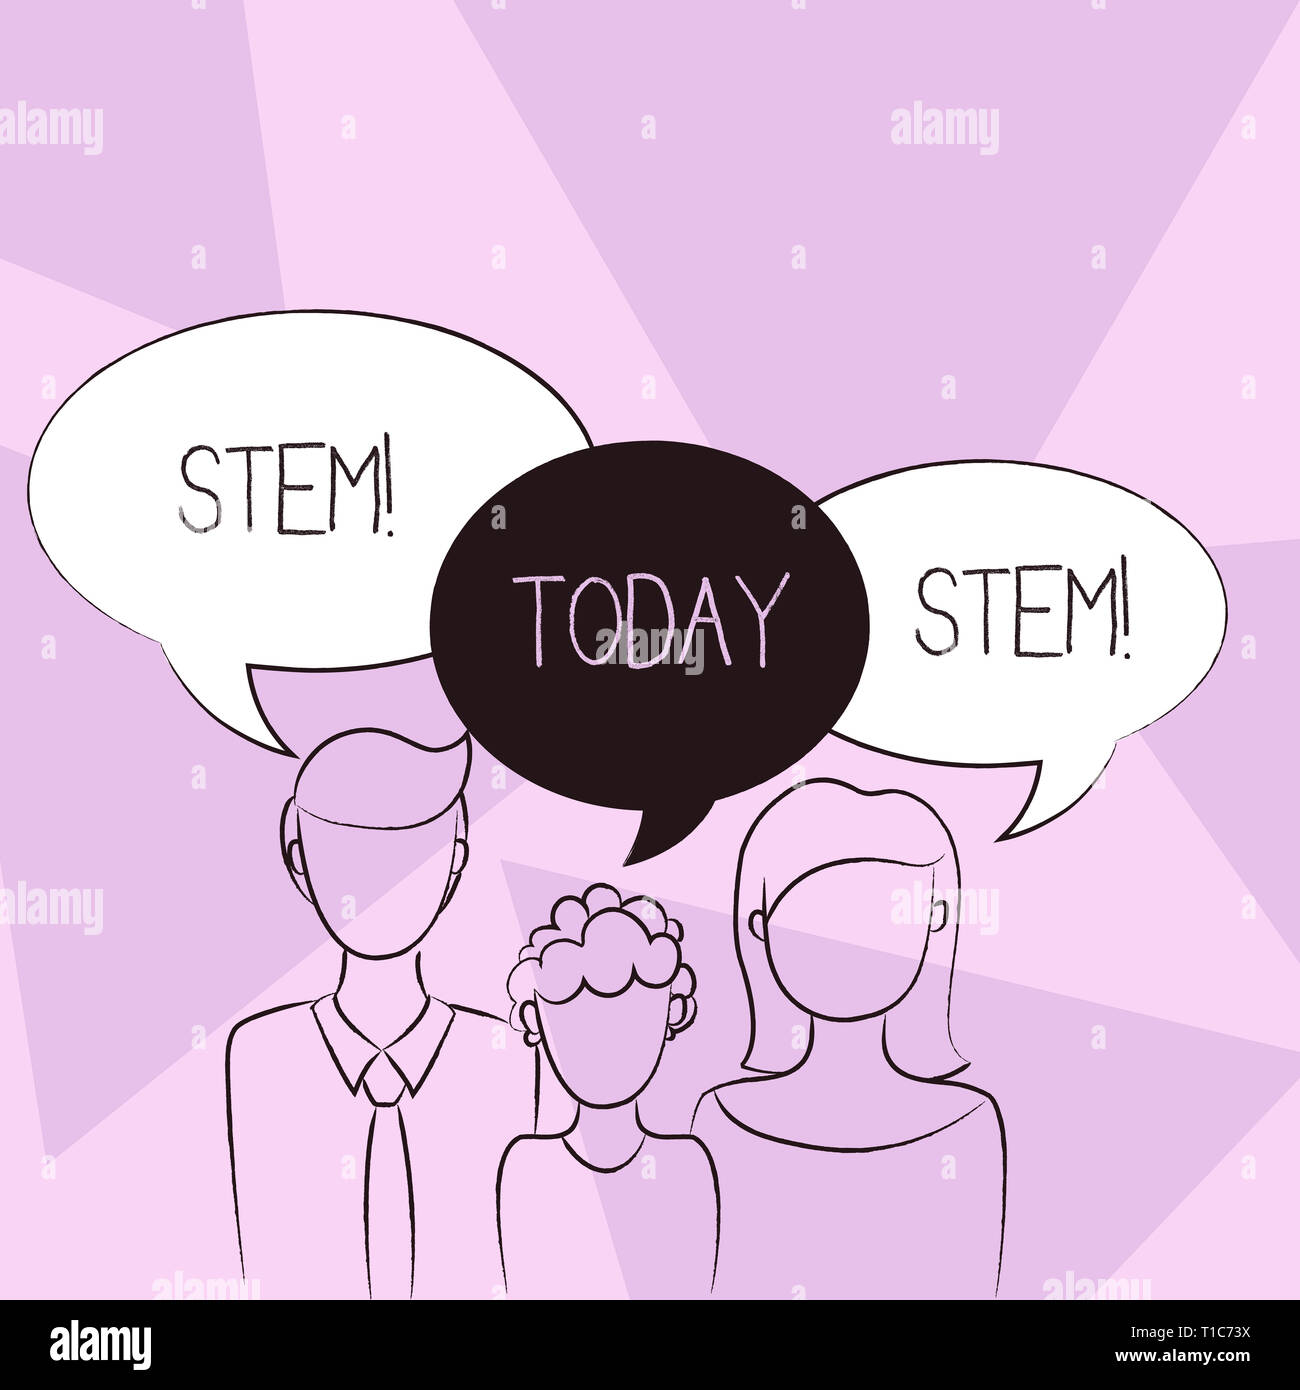 Stem School Meaning: Child Development Research Stock Photos & Child